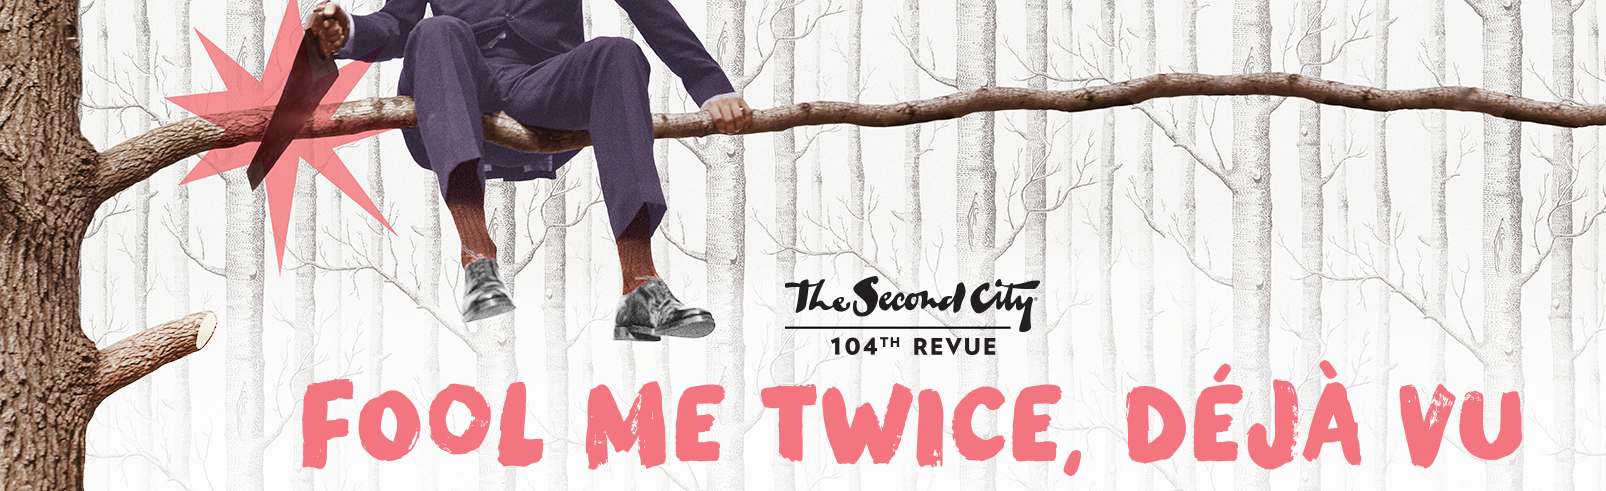 The Second City's 104th Revue: Fool Me Twice, Déjà Vu